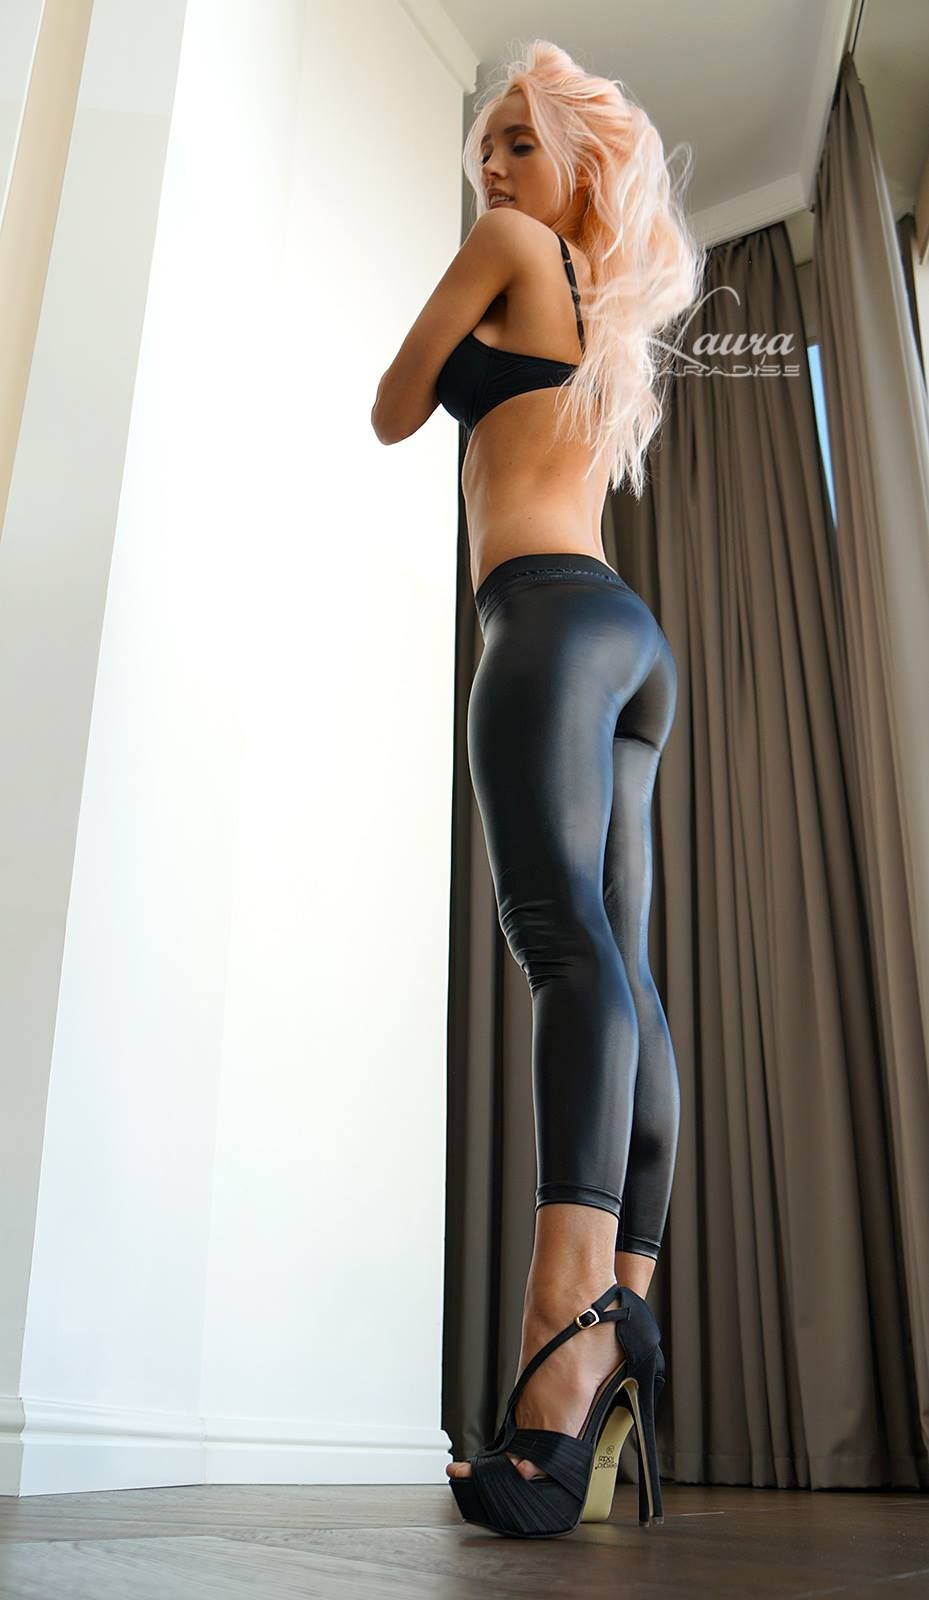 [Yoga Pants] High heels